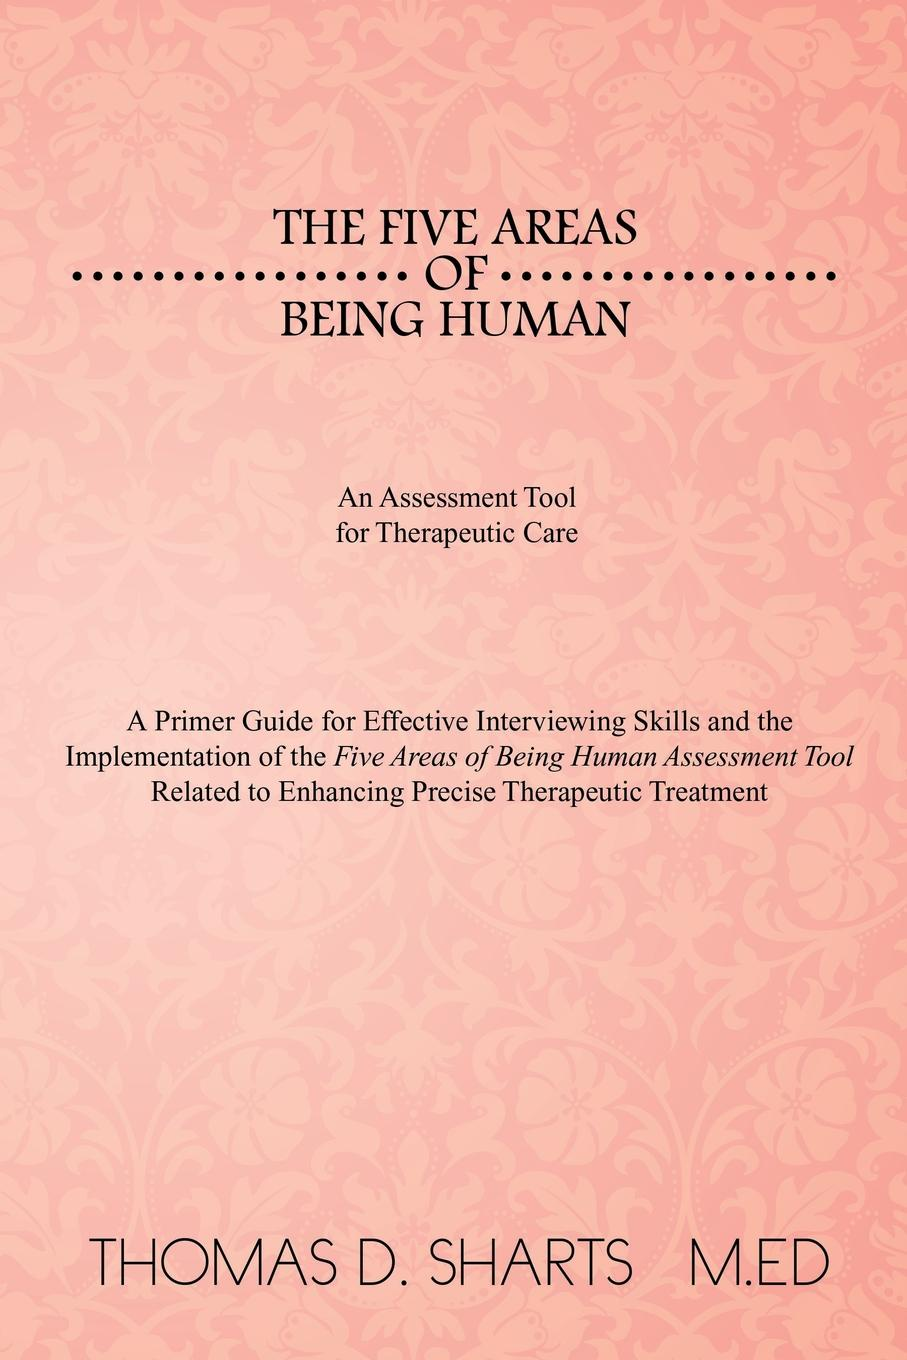 Thomas D. Sharts M. Ed The Five Areas of Being Human. An Assessment Tool for Therapeutic Care: A Primer Guide for Effective Interviewing Skills and the Implementation of Th reichert janice m handbook of therapeutic antibodies